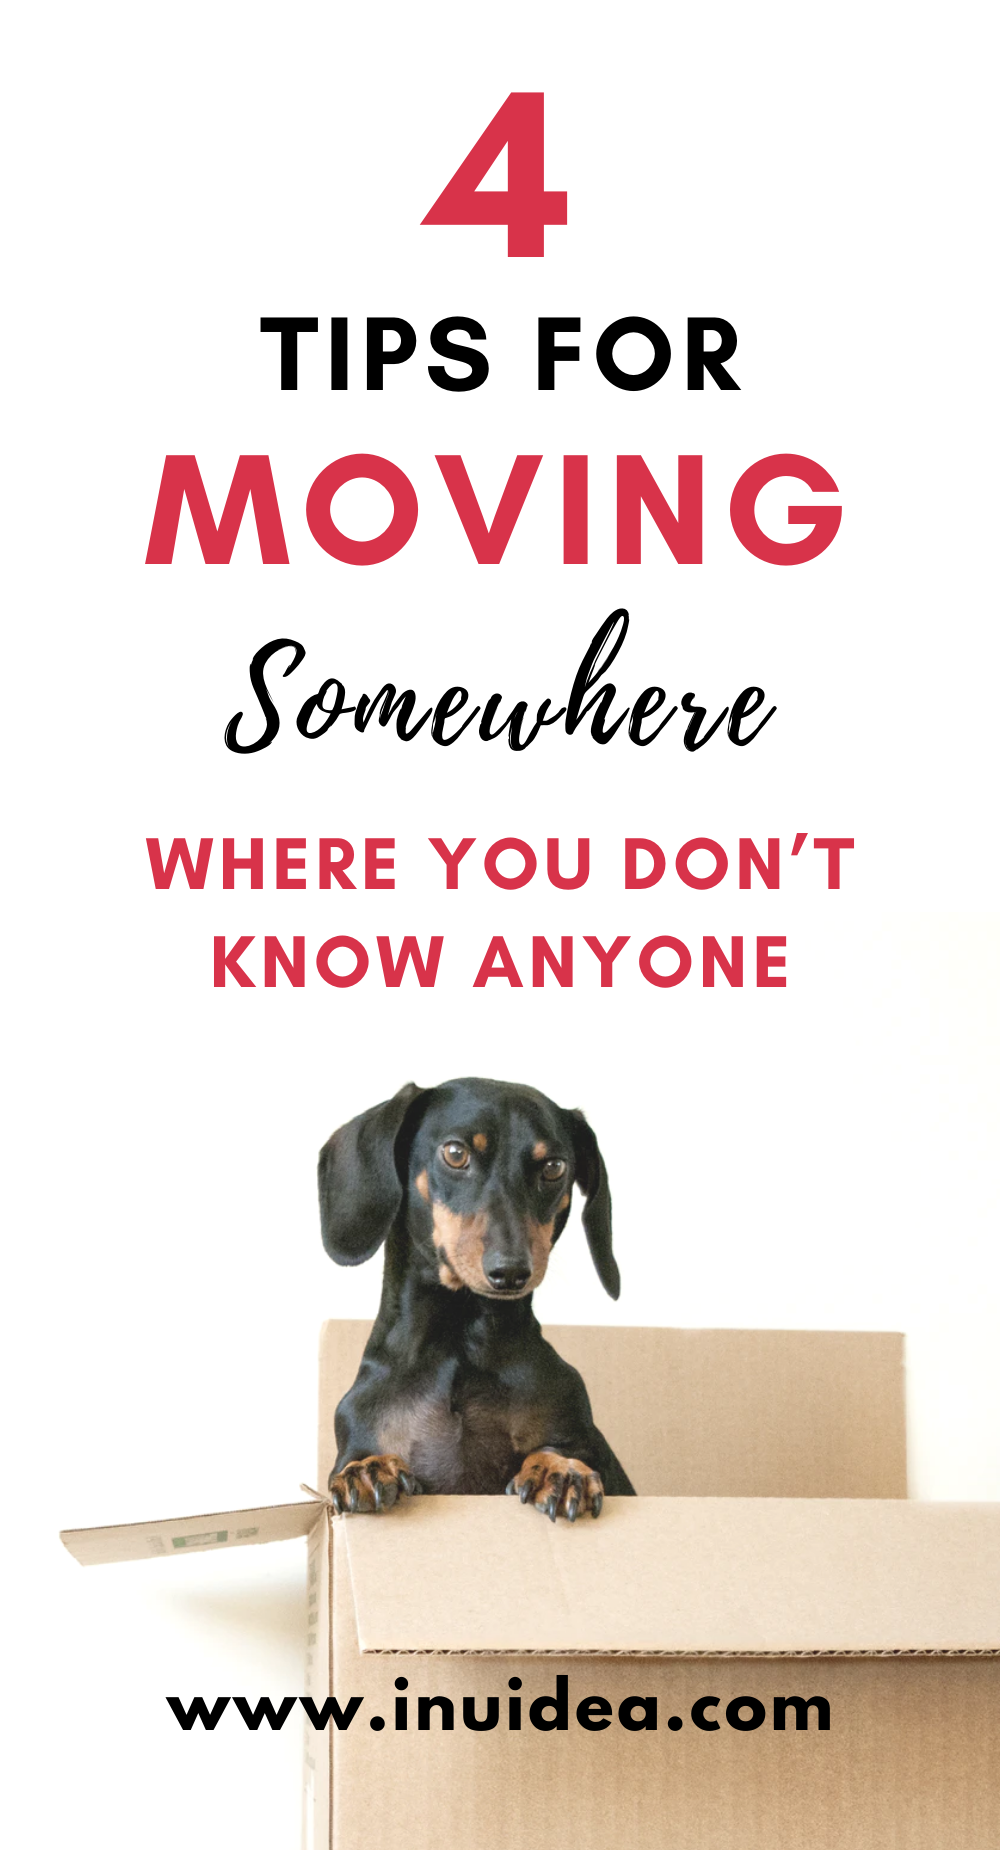 4 Tips for Moving Somewhere Where You Don't Know Anyone (1)